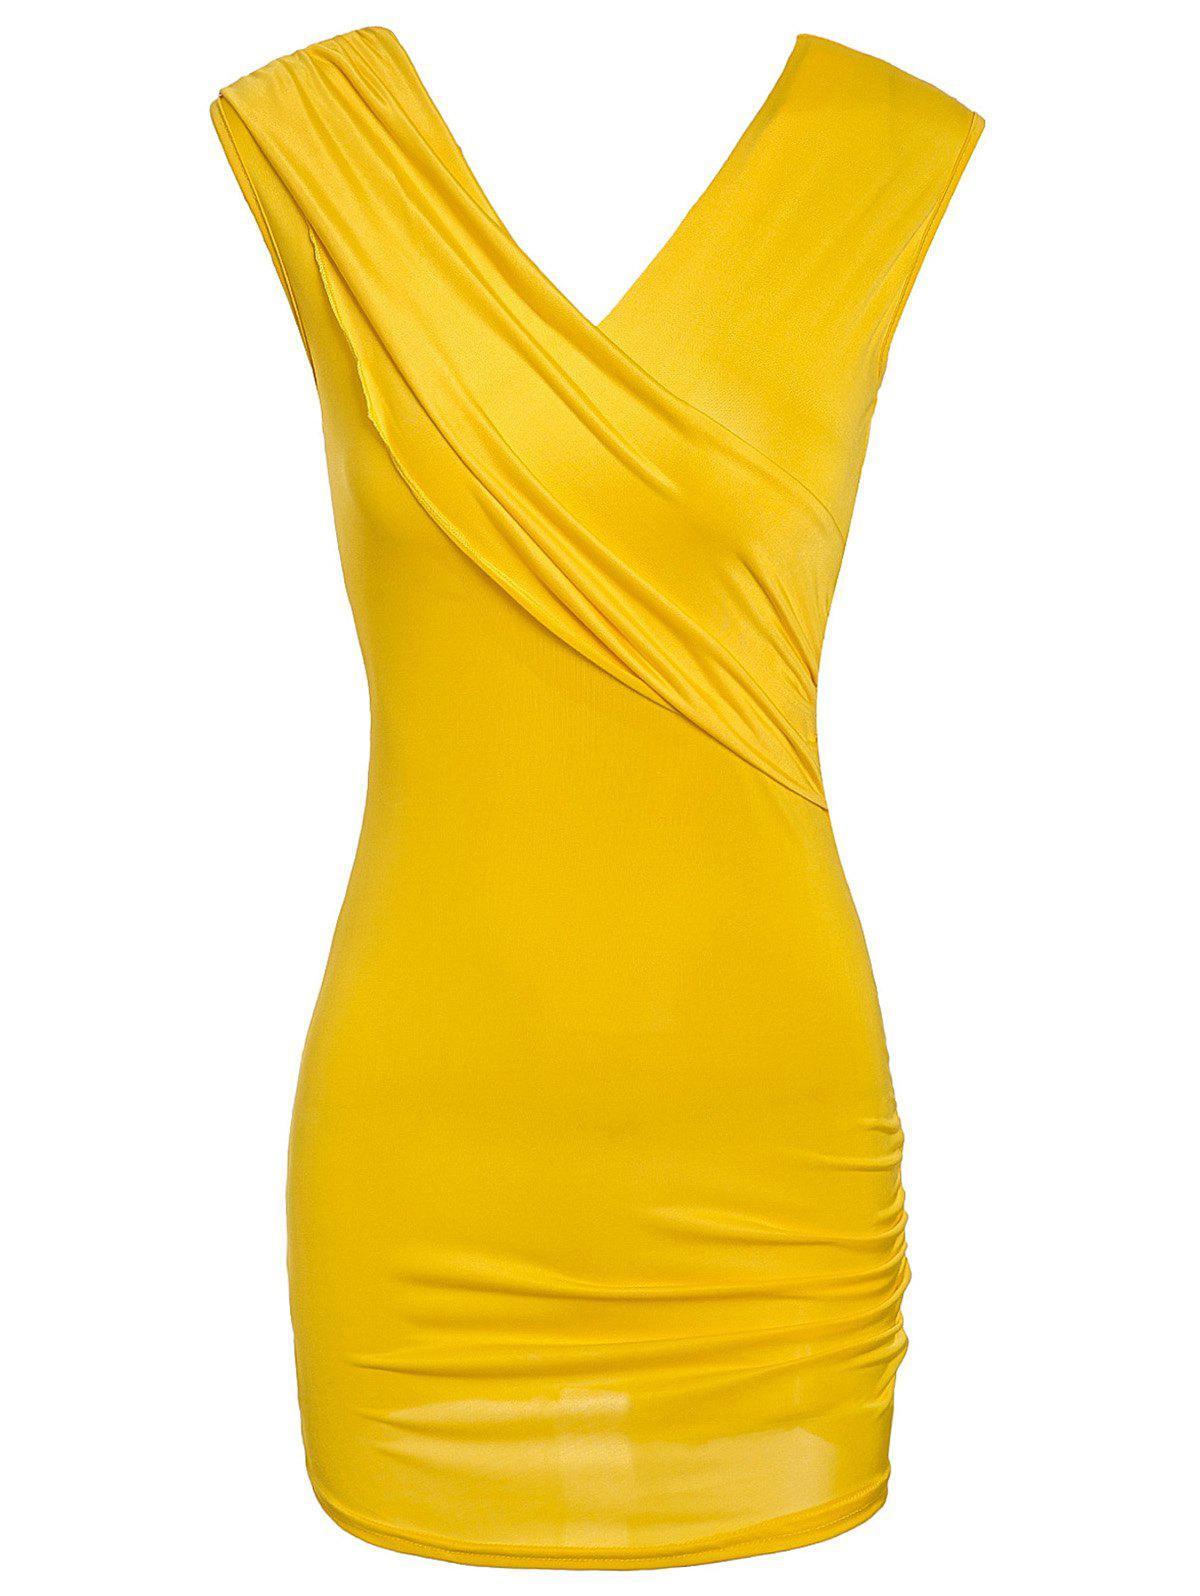 Chic Sleeveless V-Neck Slimming Pure Color Women's Mini Dress - YELLOW ONE SIZE(FIT SIZE XS TO M)